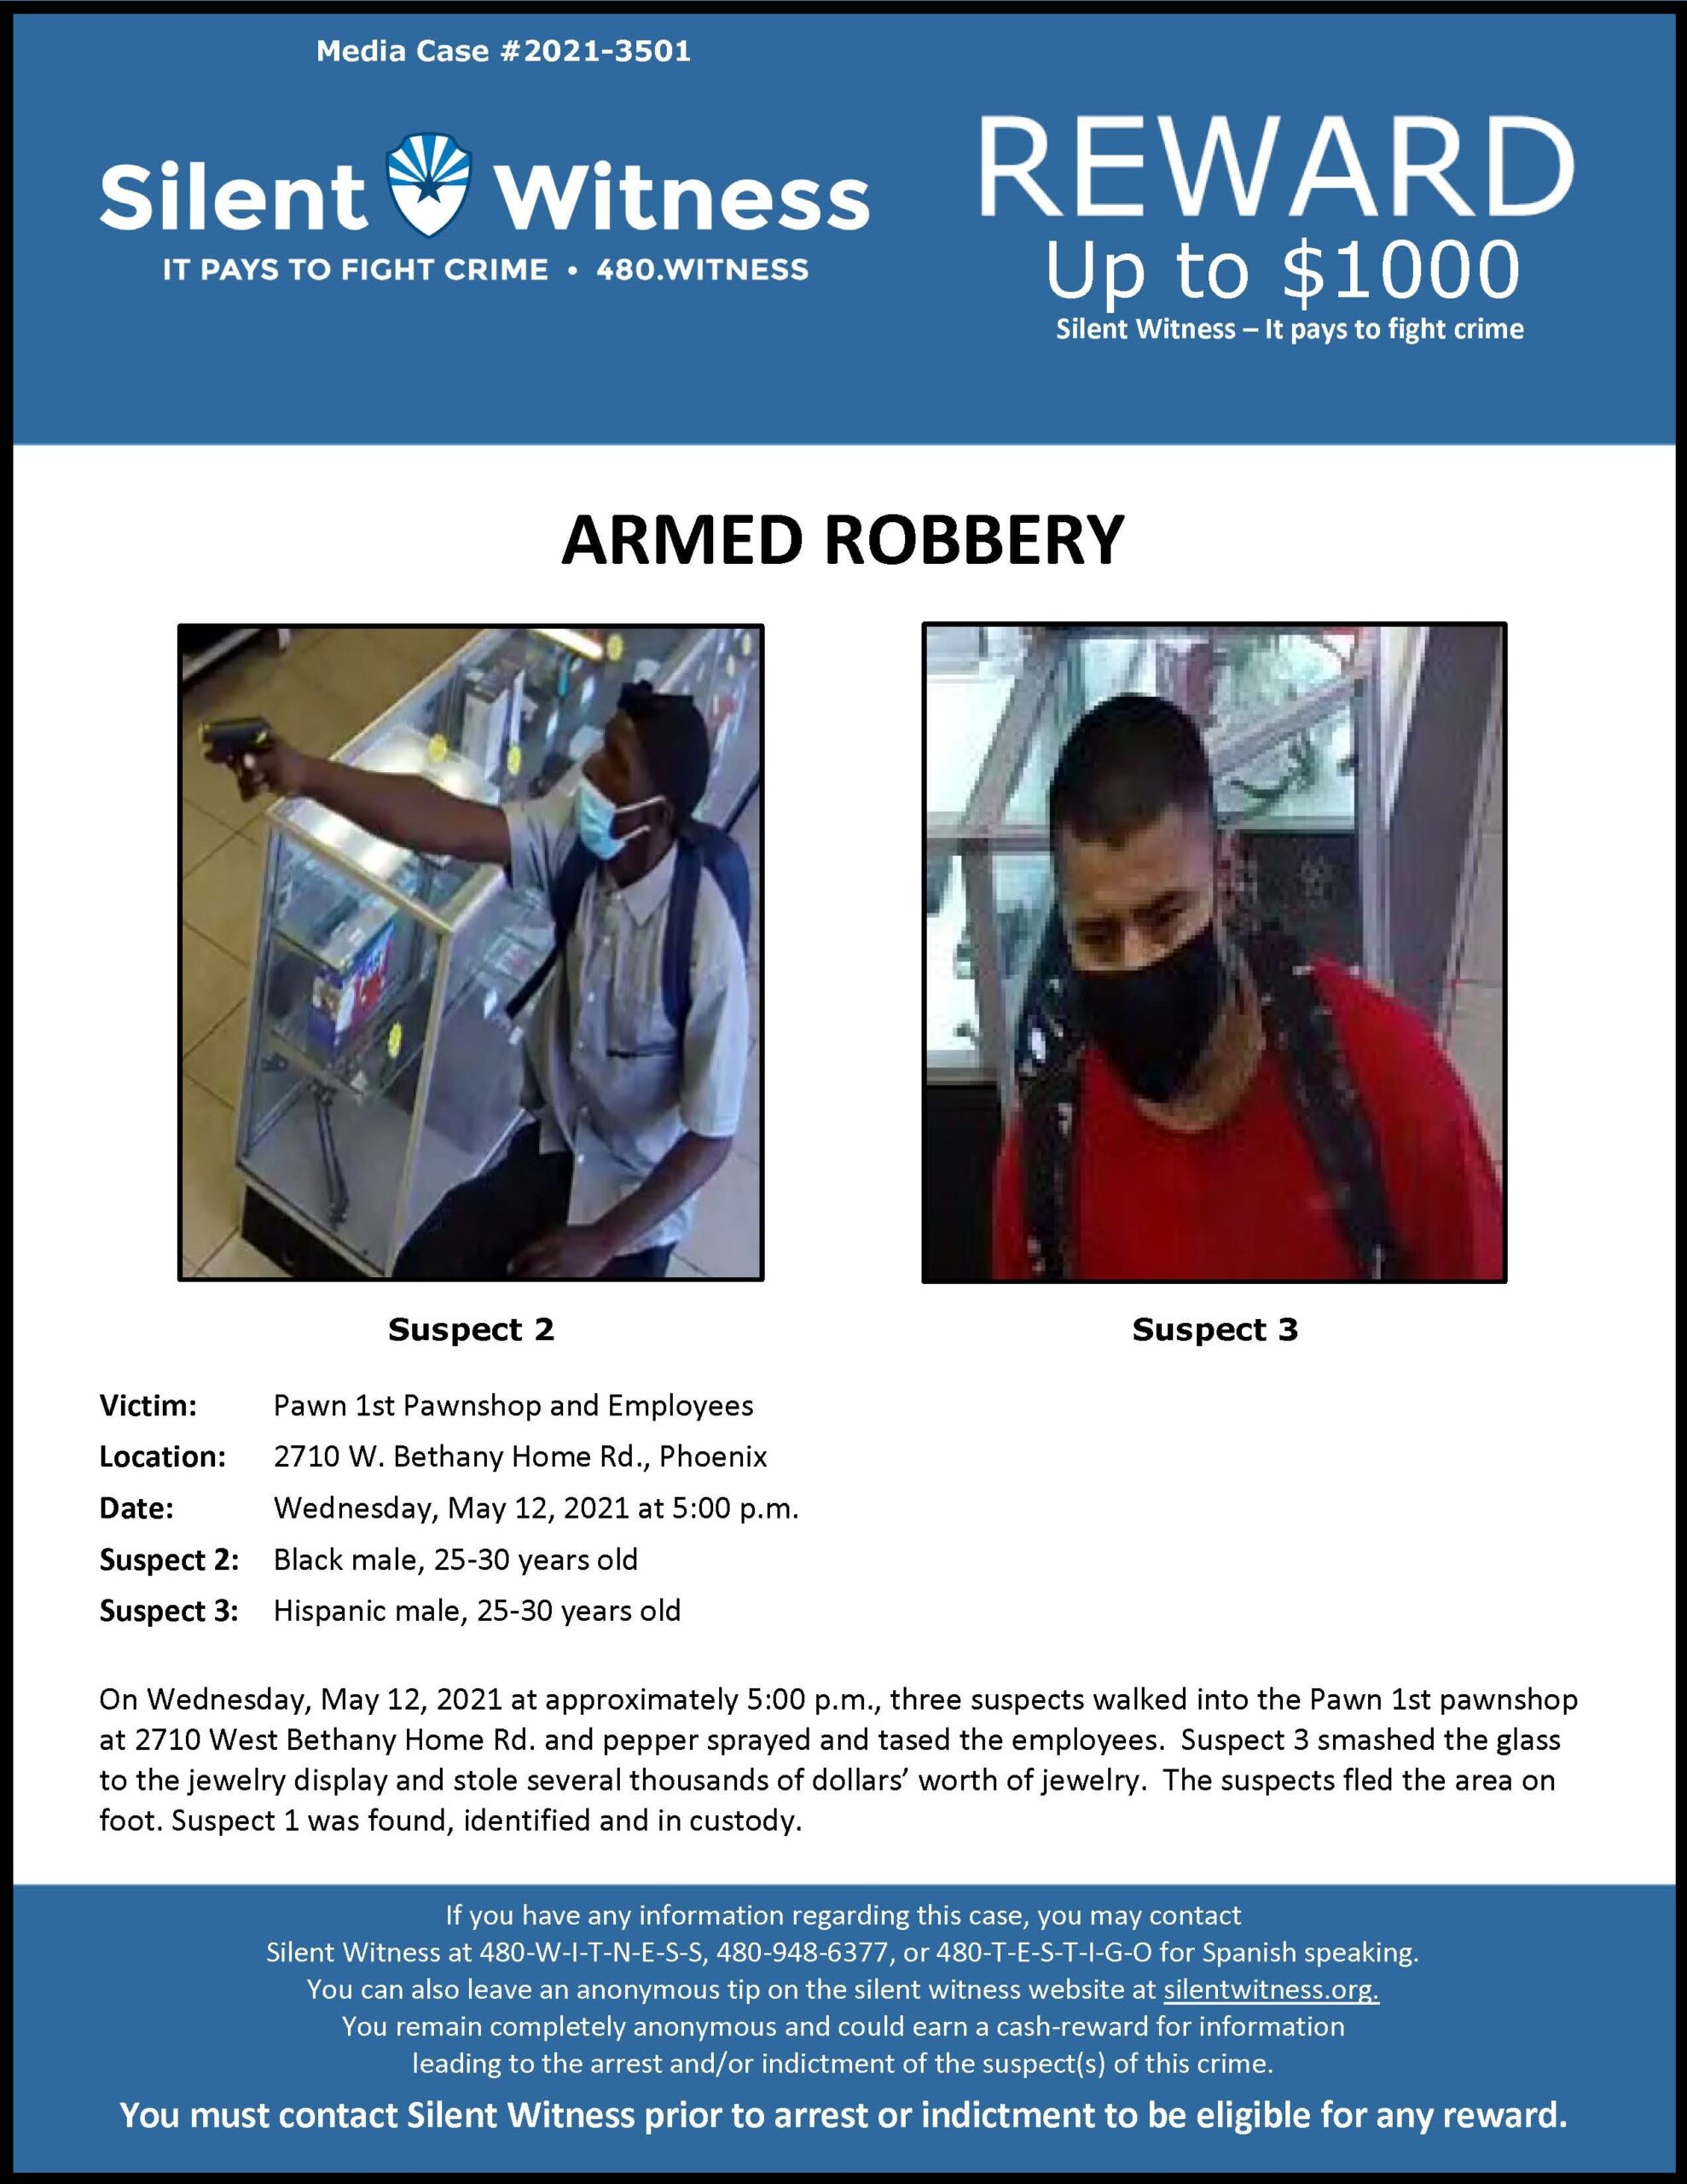 Armed Robbery / Pawn 1st / 2710 W. Bethany Home Rd.